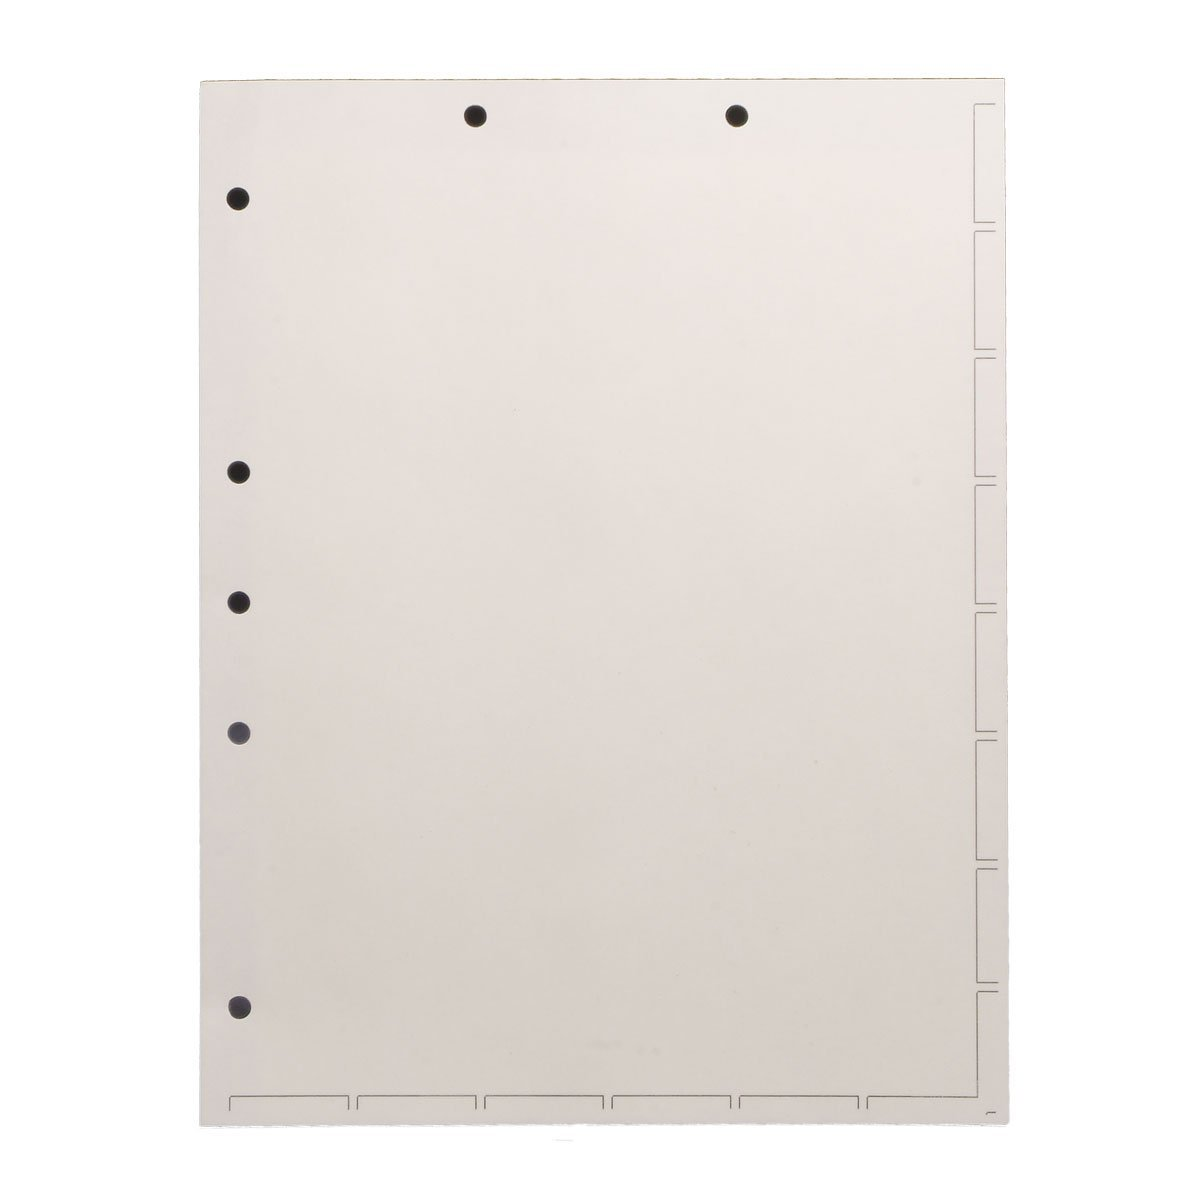 Chart Divider Sheets for Stick-On Tabs, Letter Size, White (Box of 250)